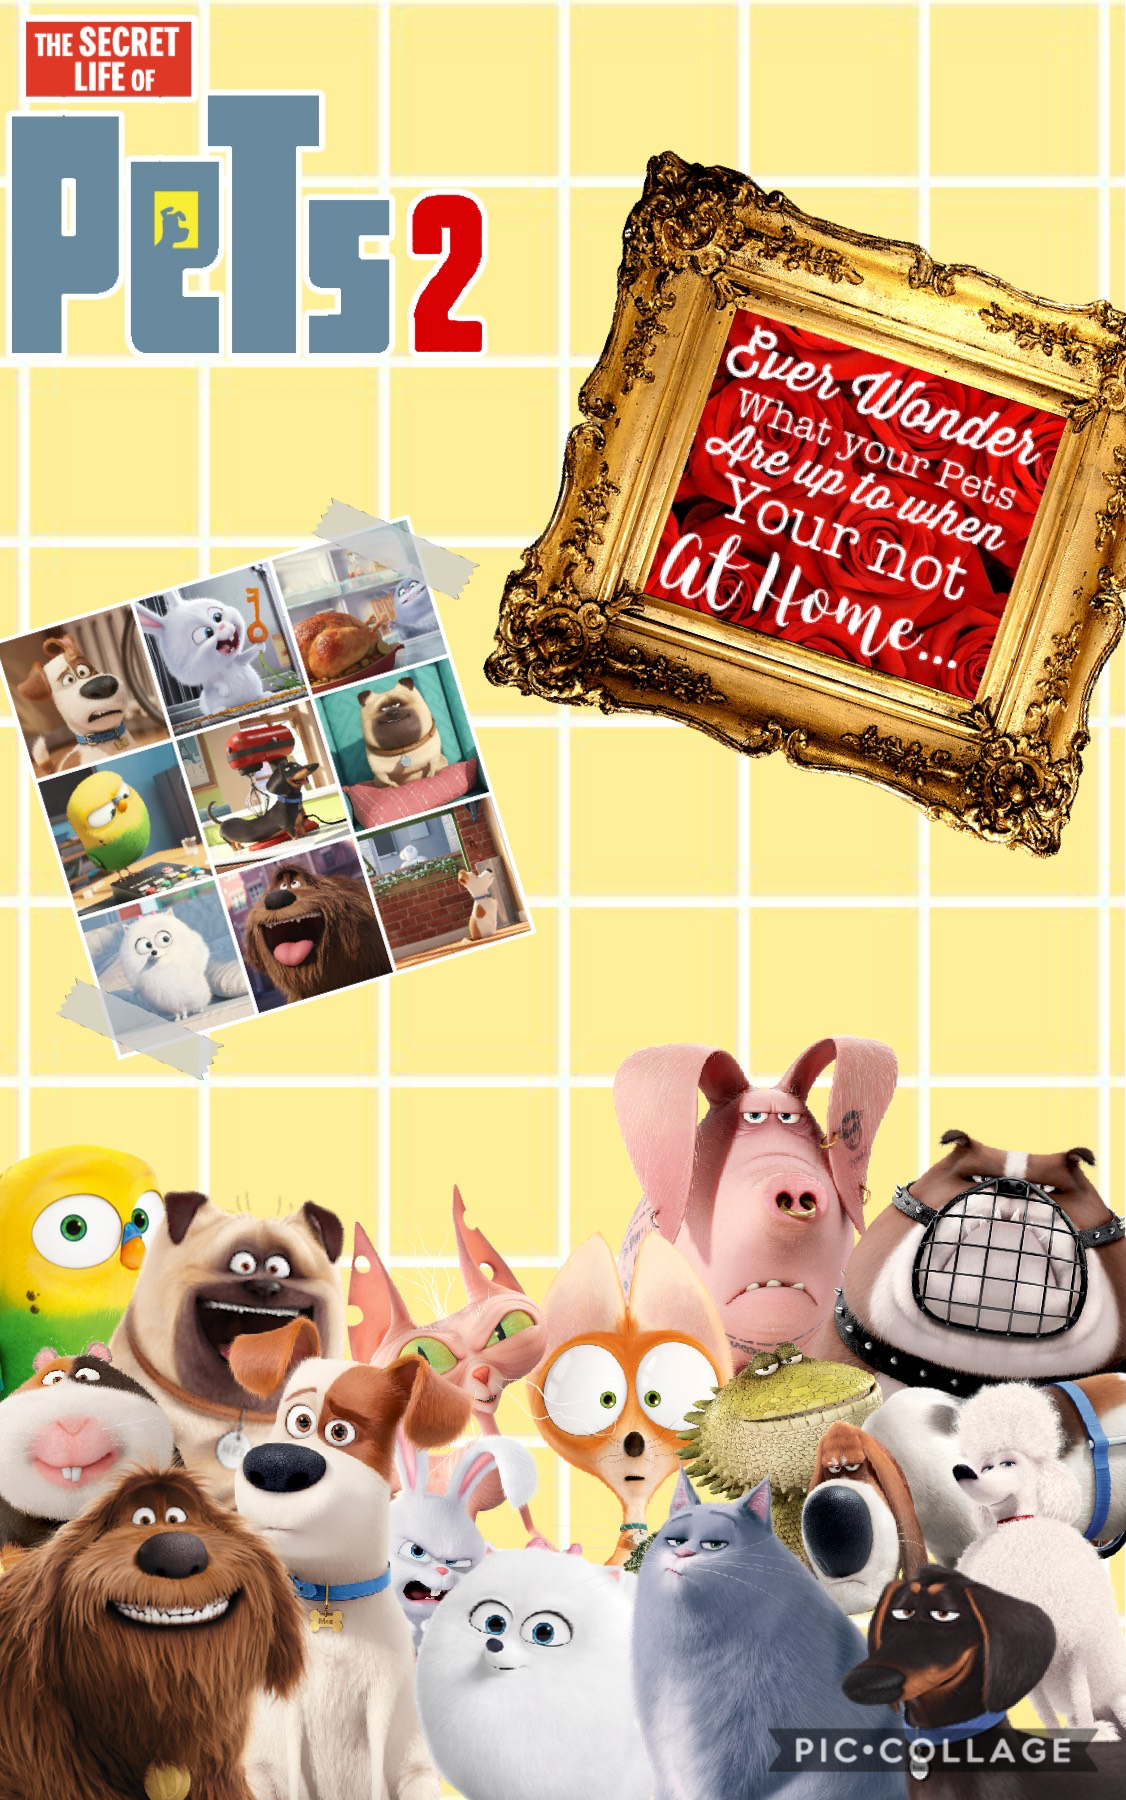 🥳Tap🥳 Next I might do a Toy story one, I might start to do more movie collages. I haven't seen the movie yet but I just thought it would be fun to make a collage of It. Soon I will be doing a post with more info about me!